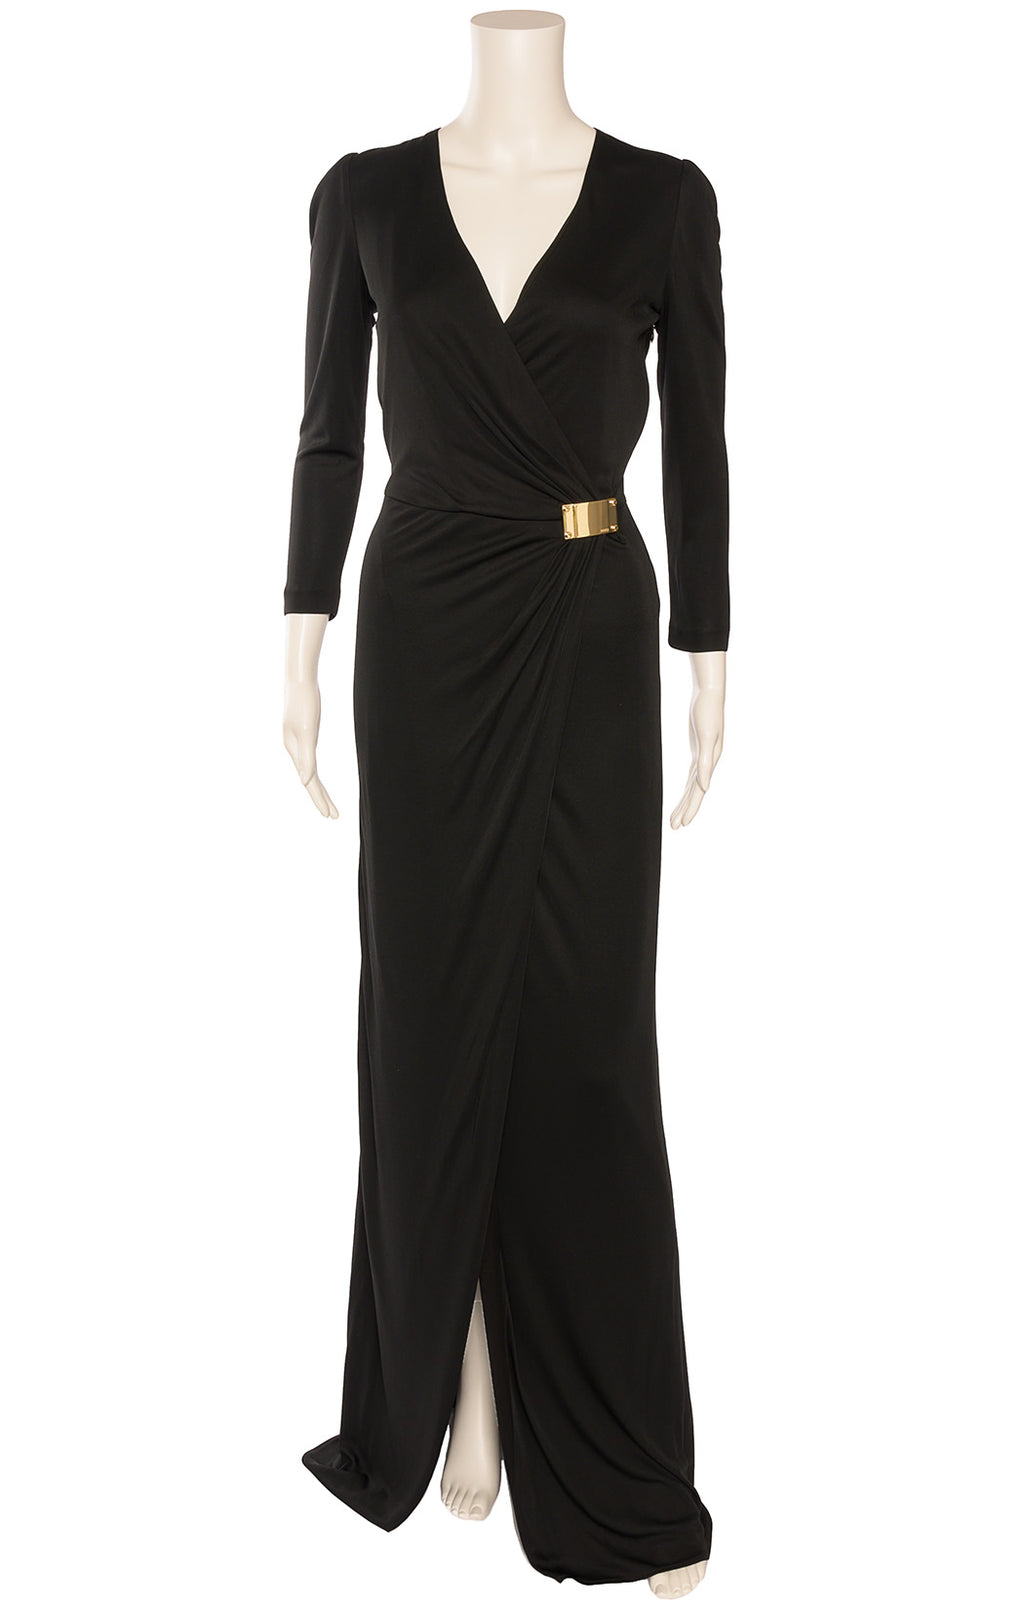 Front view of EMILIO PUCCI Long dress Size: 8